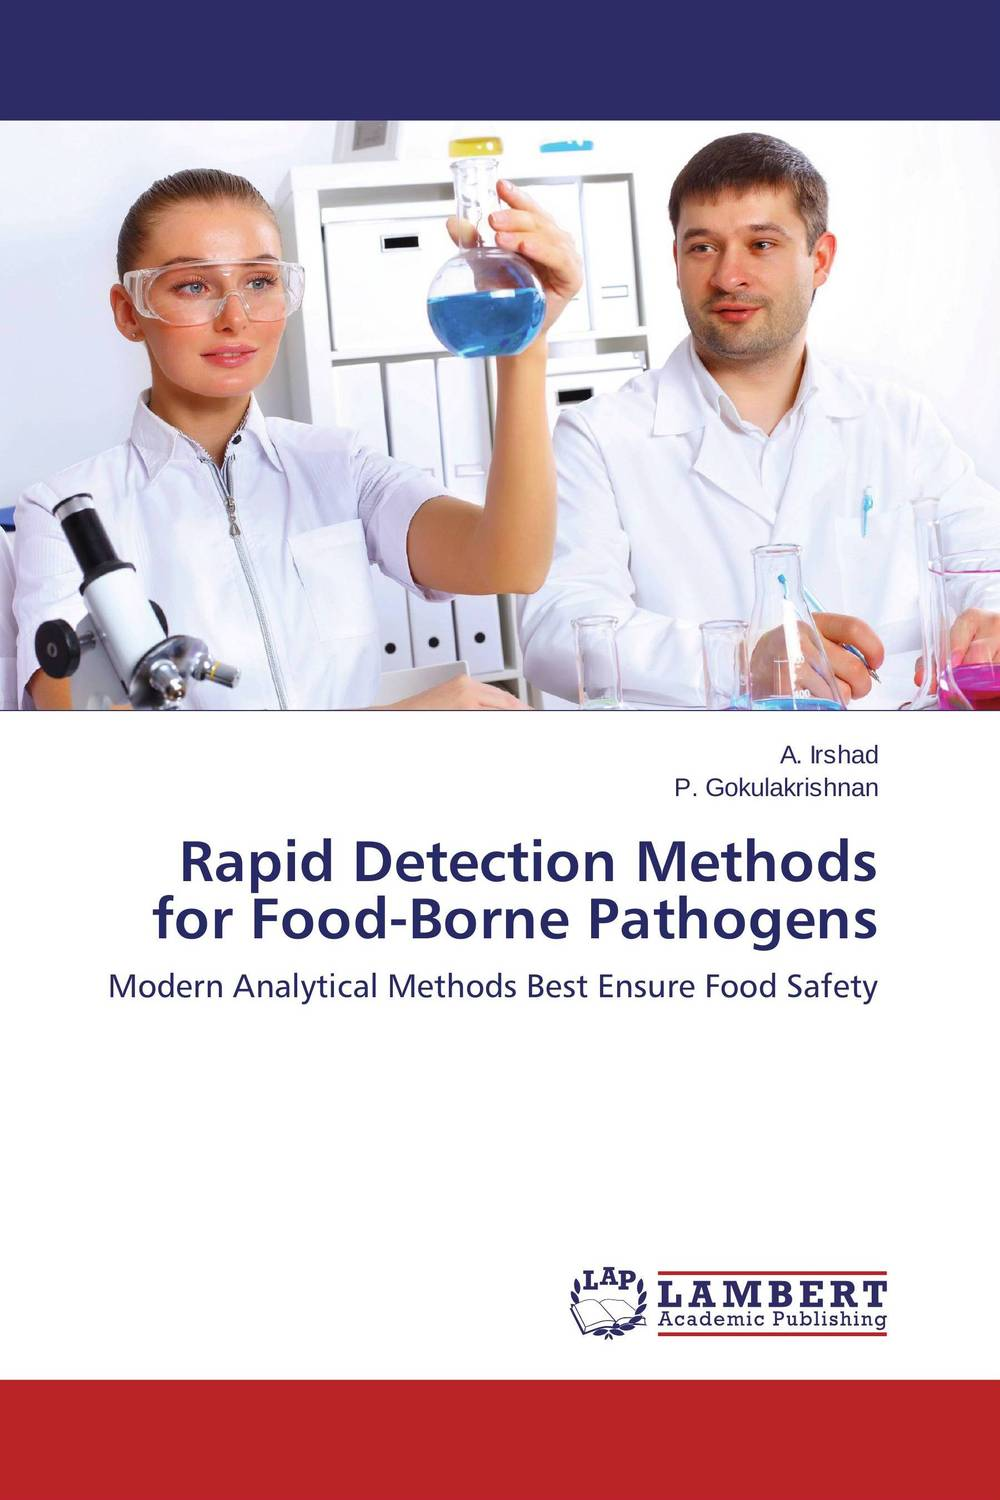 Rapid Detection Methods for Food-Borne Pathogens tapan kumar dutta and parimal roychoudhury diagnosis and characterization of bacterial pathogens in animal